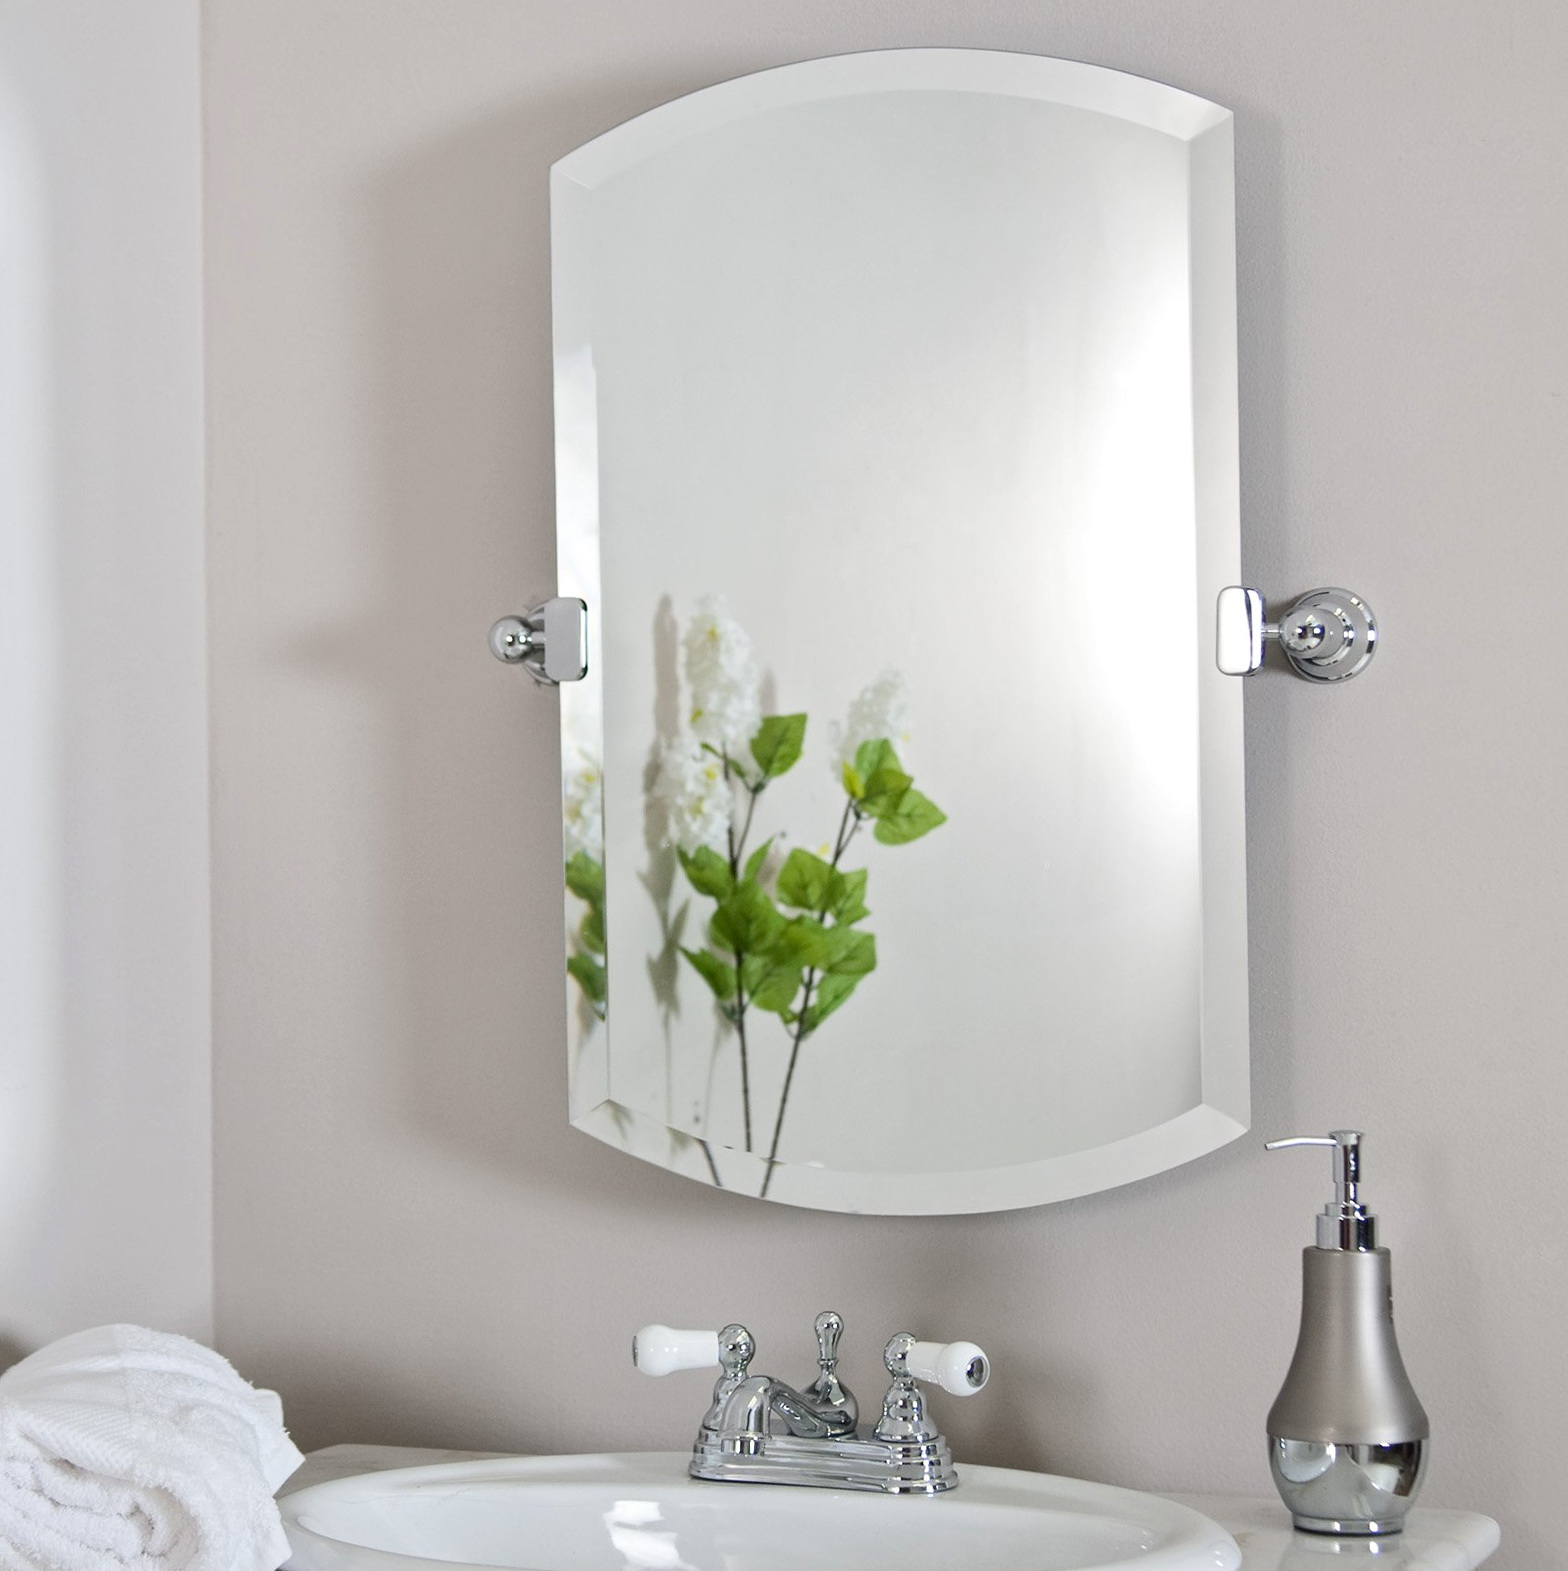 Tilting Bathroom Wall Mirrors | Home Design Ideas